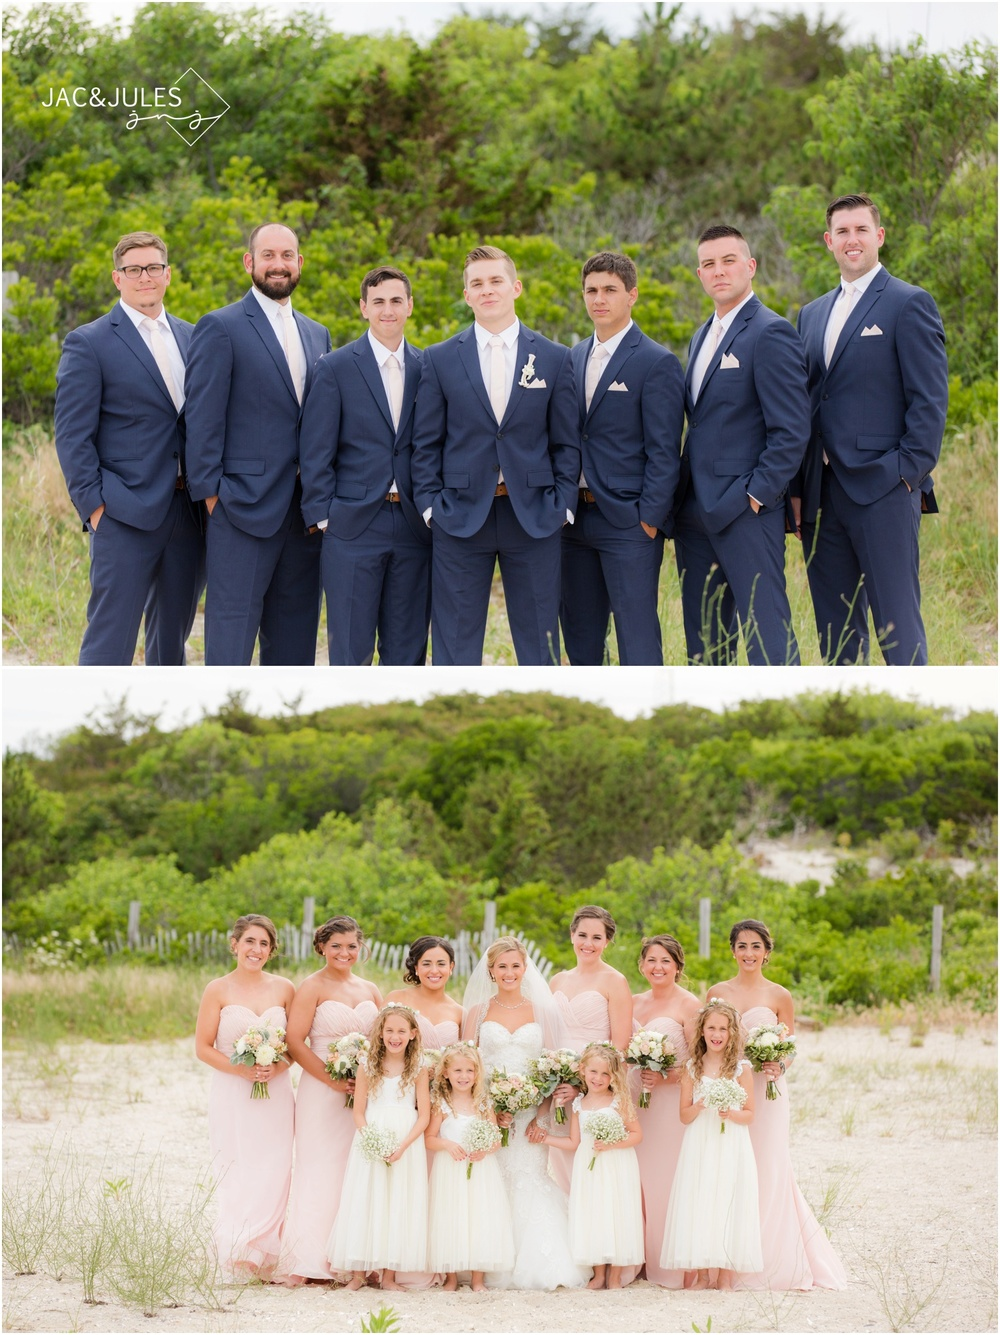 bridesmaids and groomsmen at Barnegat Lighthouse in LBI, NJ for wedding day photos on the beach.